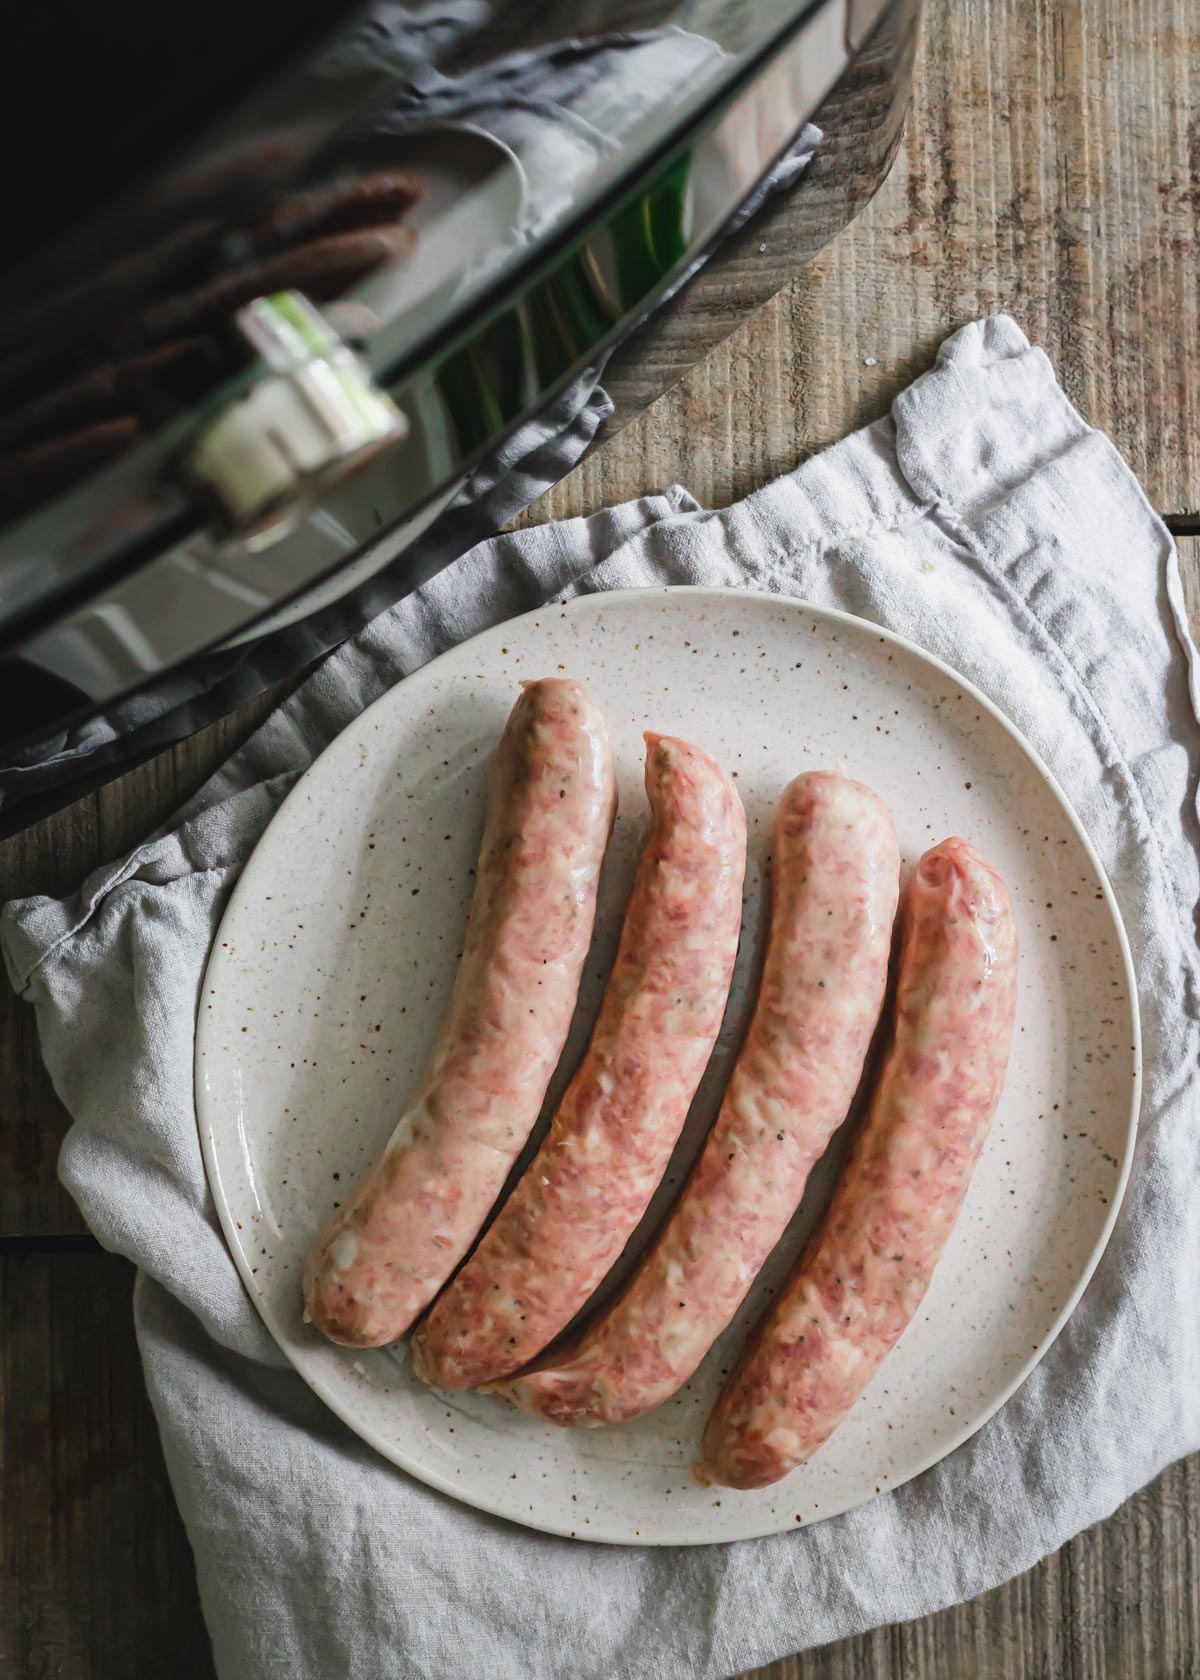 Uncooked pork sausage links on a plate before air frying.